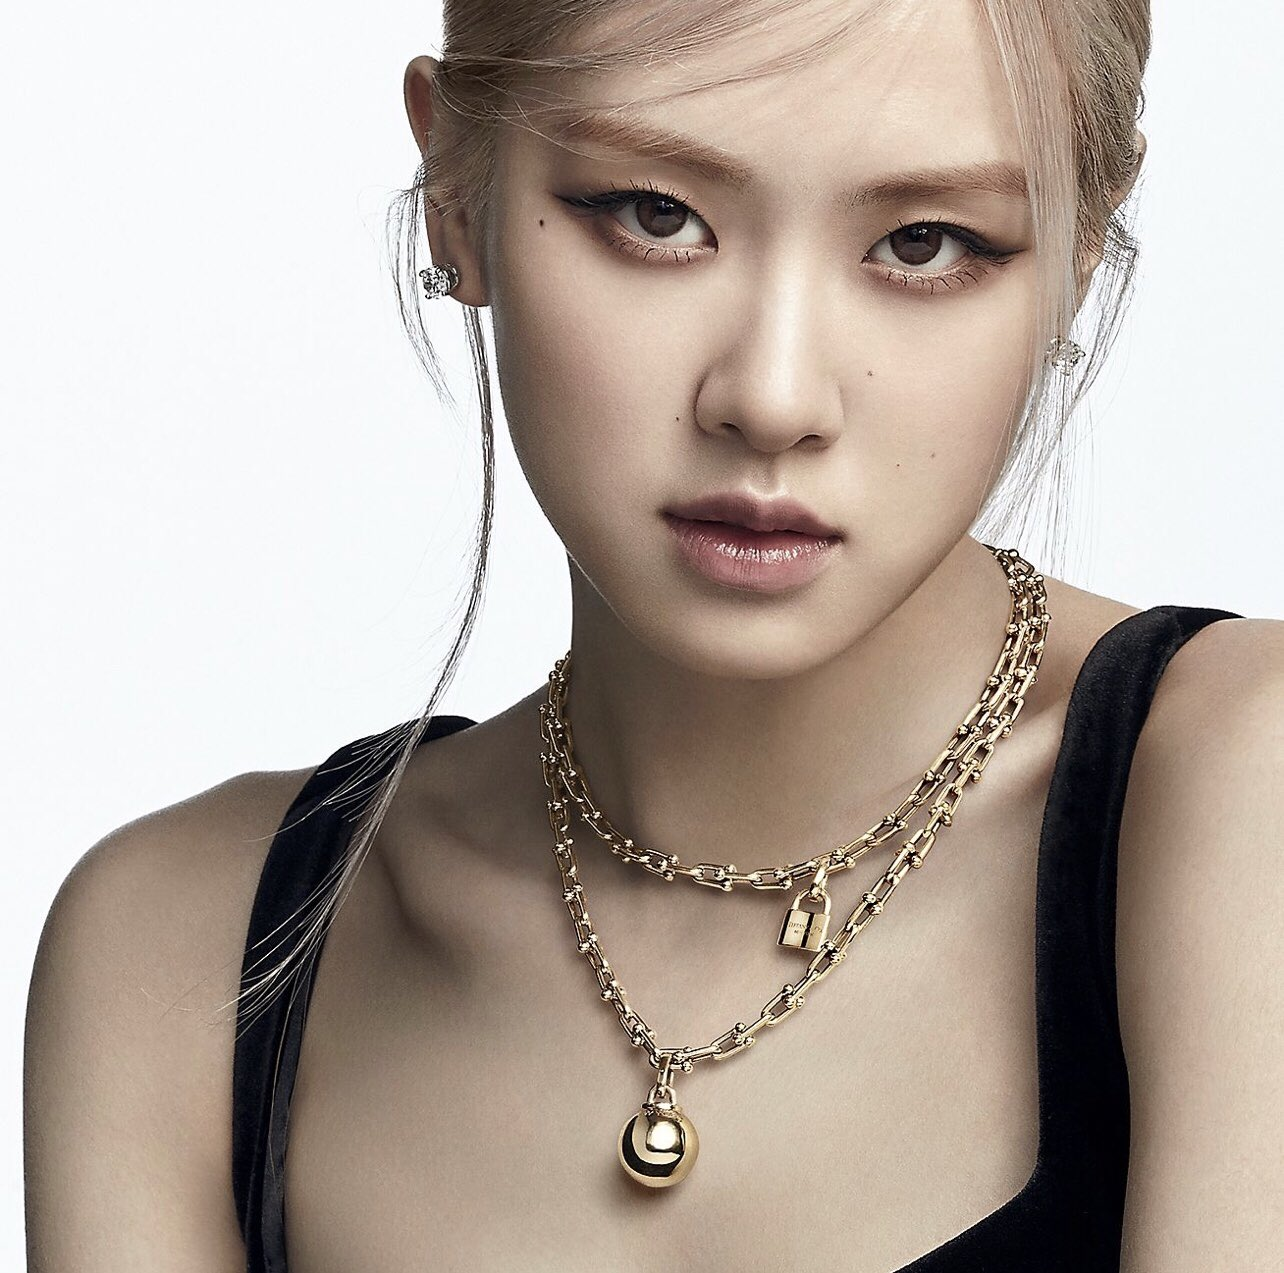 BLACKPINK star and solo artist ROSÉ channels the bold, unapologetic spirit of Tiffany HardWear.